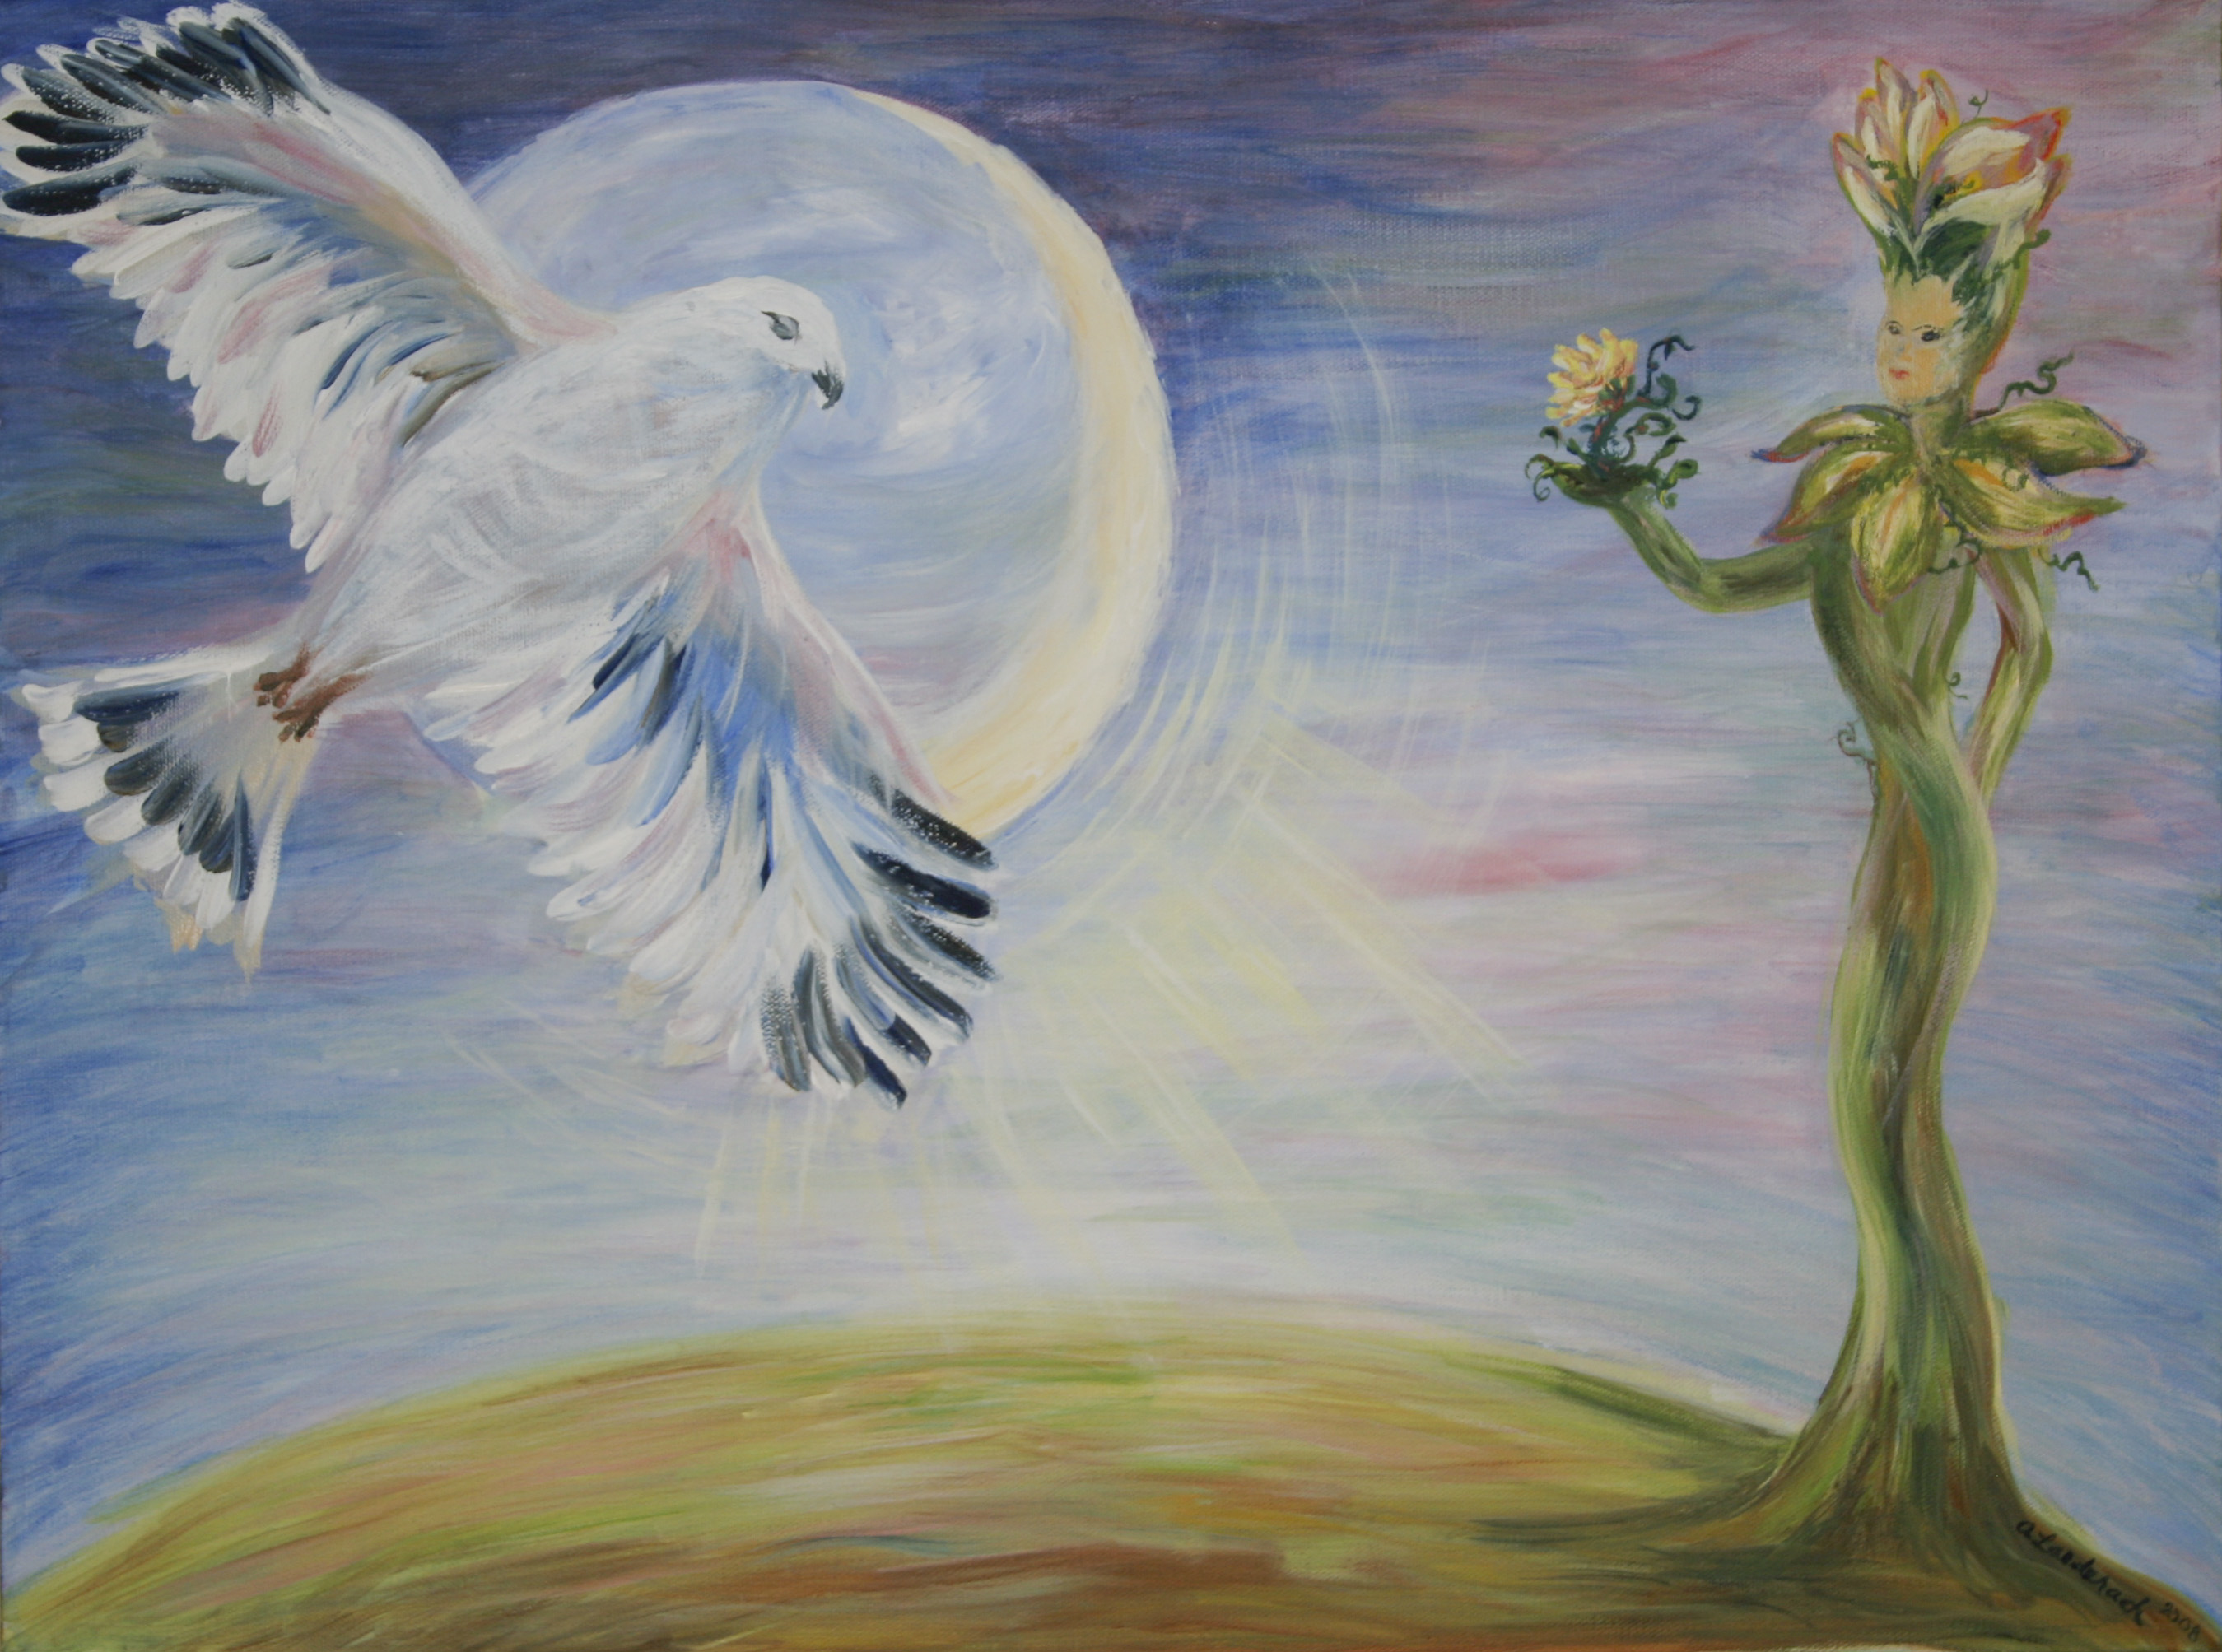 White Hawk, Moon & Earth Goddess